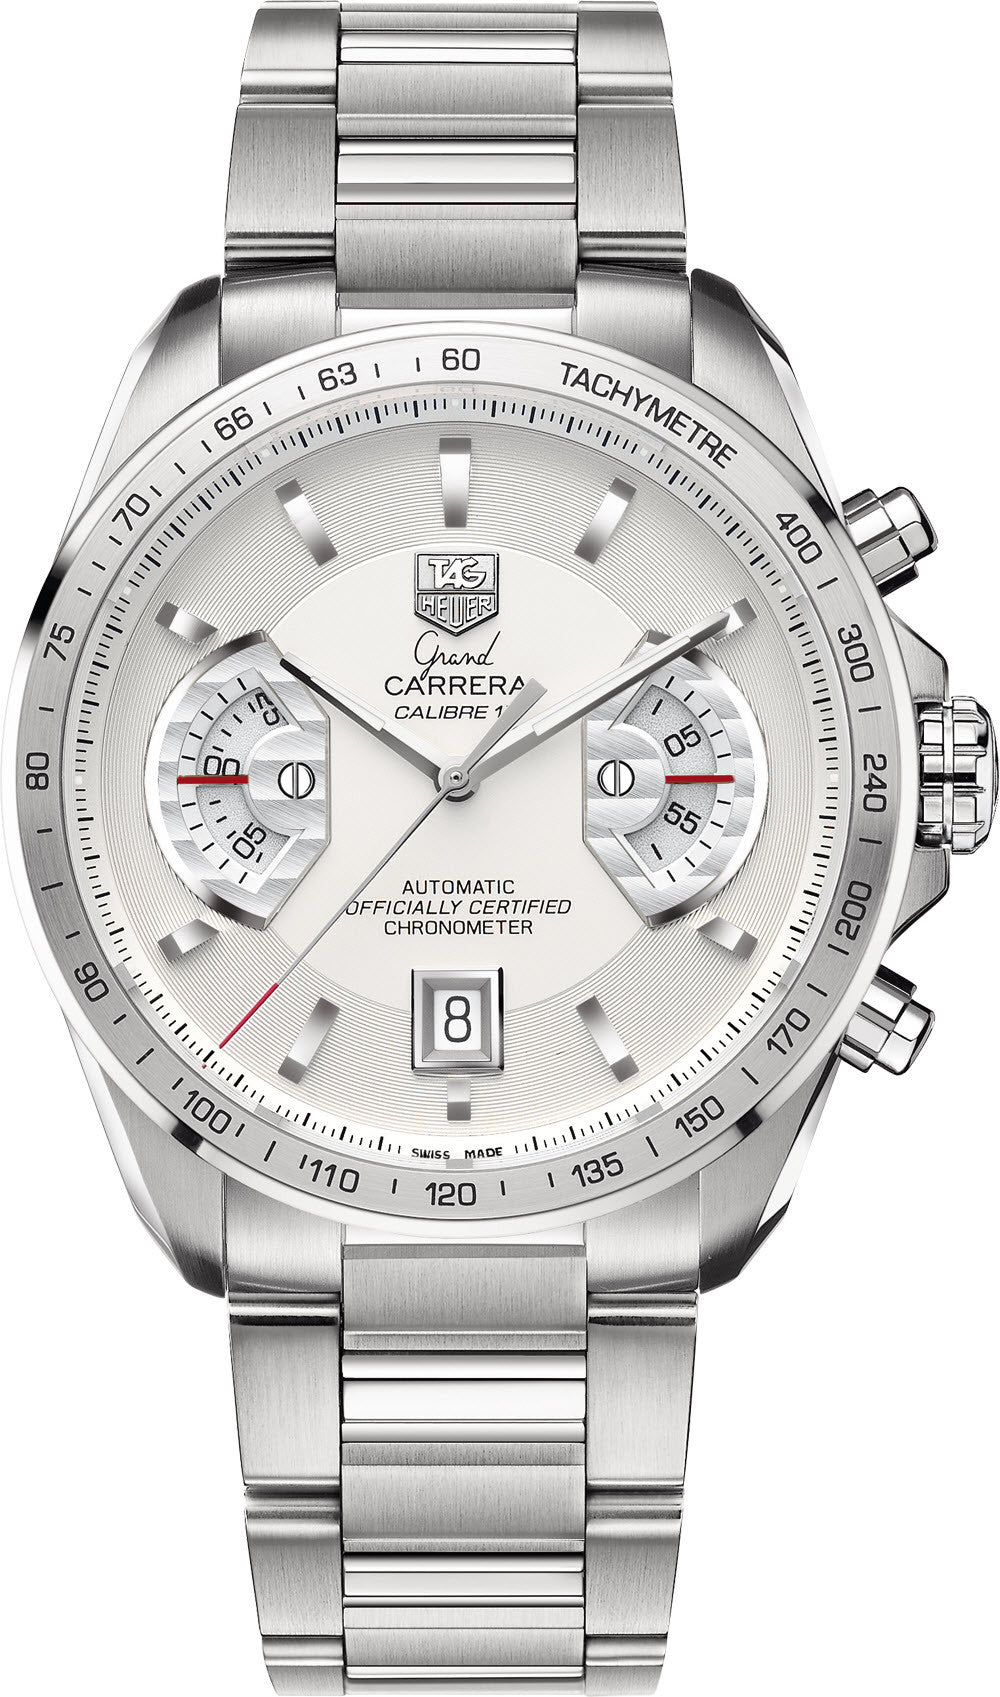 TAG Heuer Grand Carrera Chronograph Calibre 17